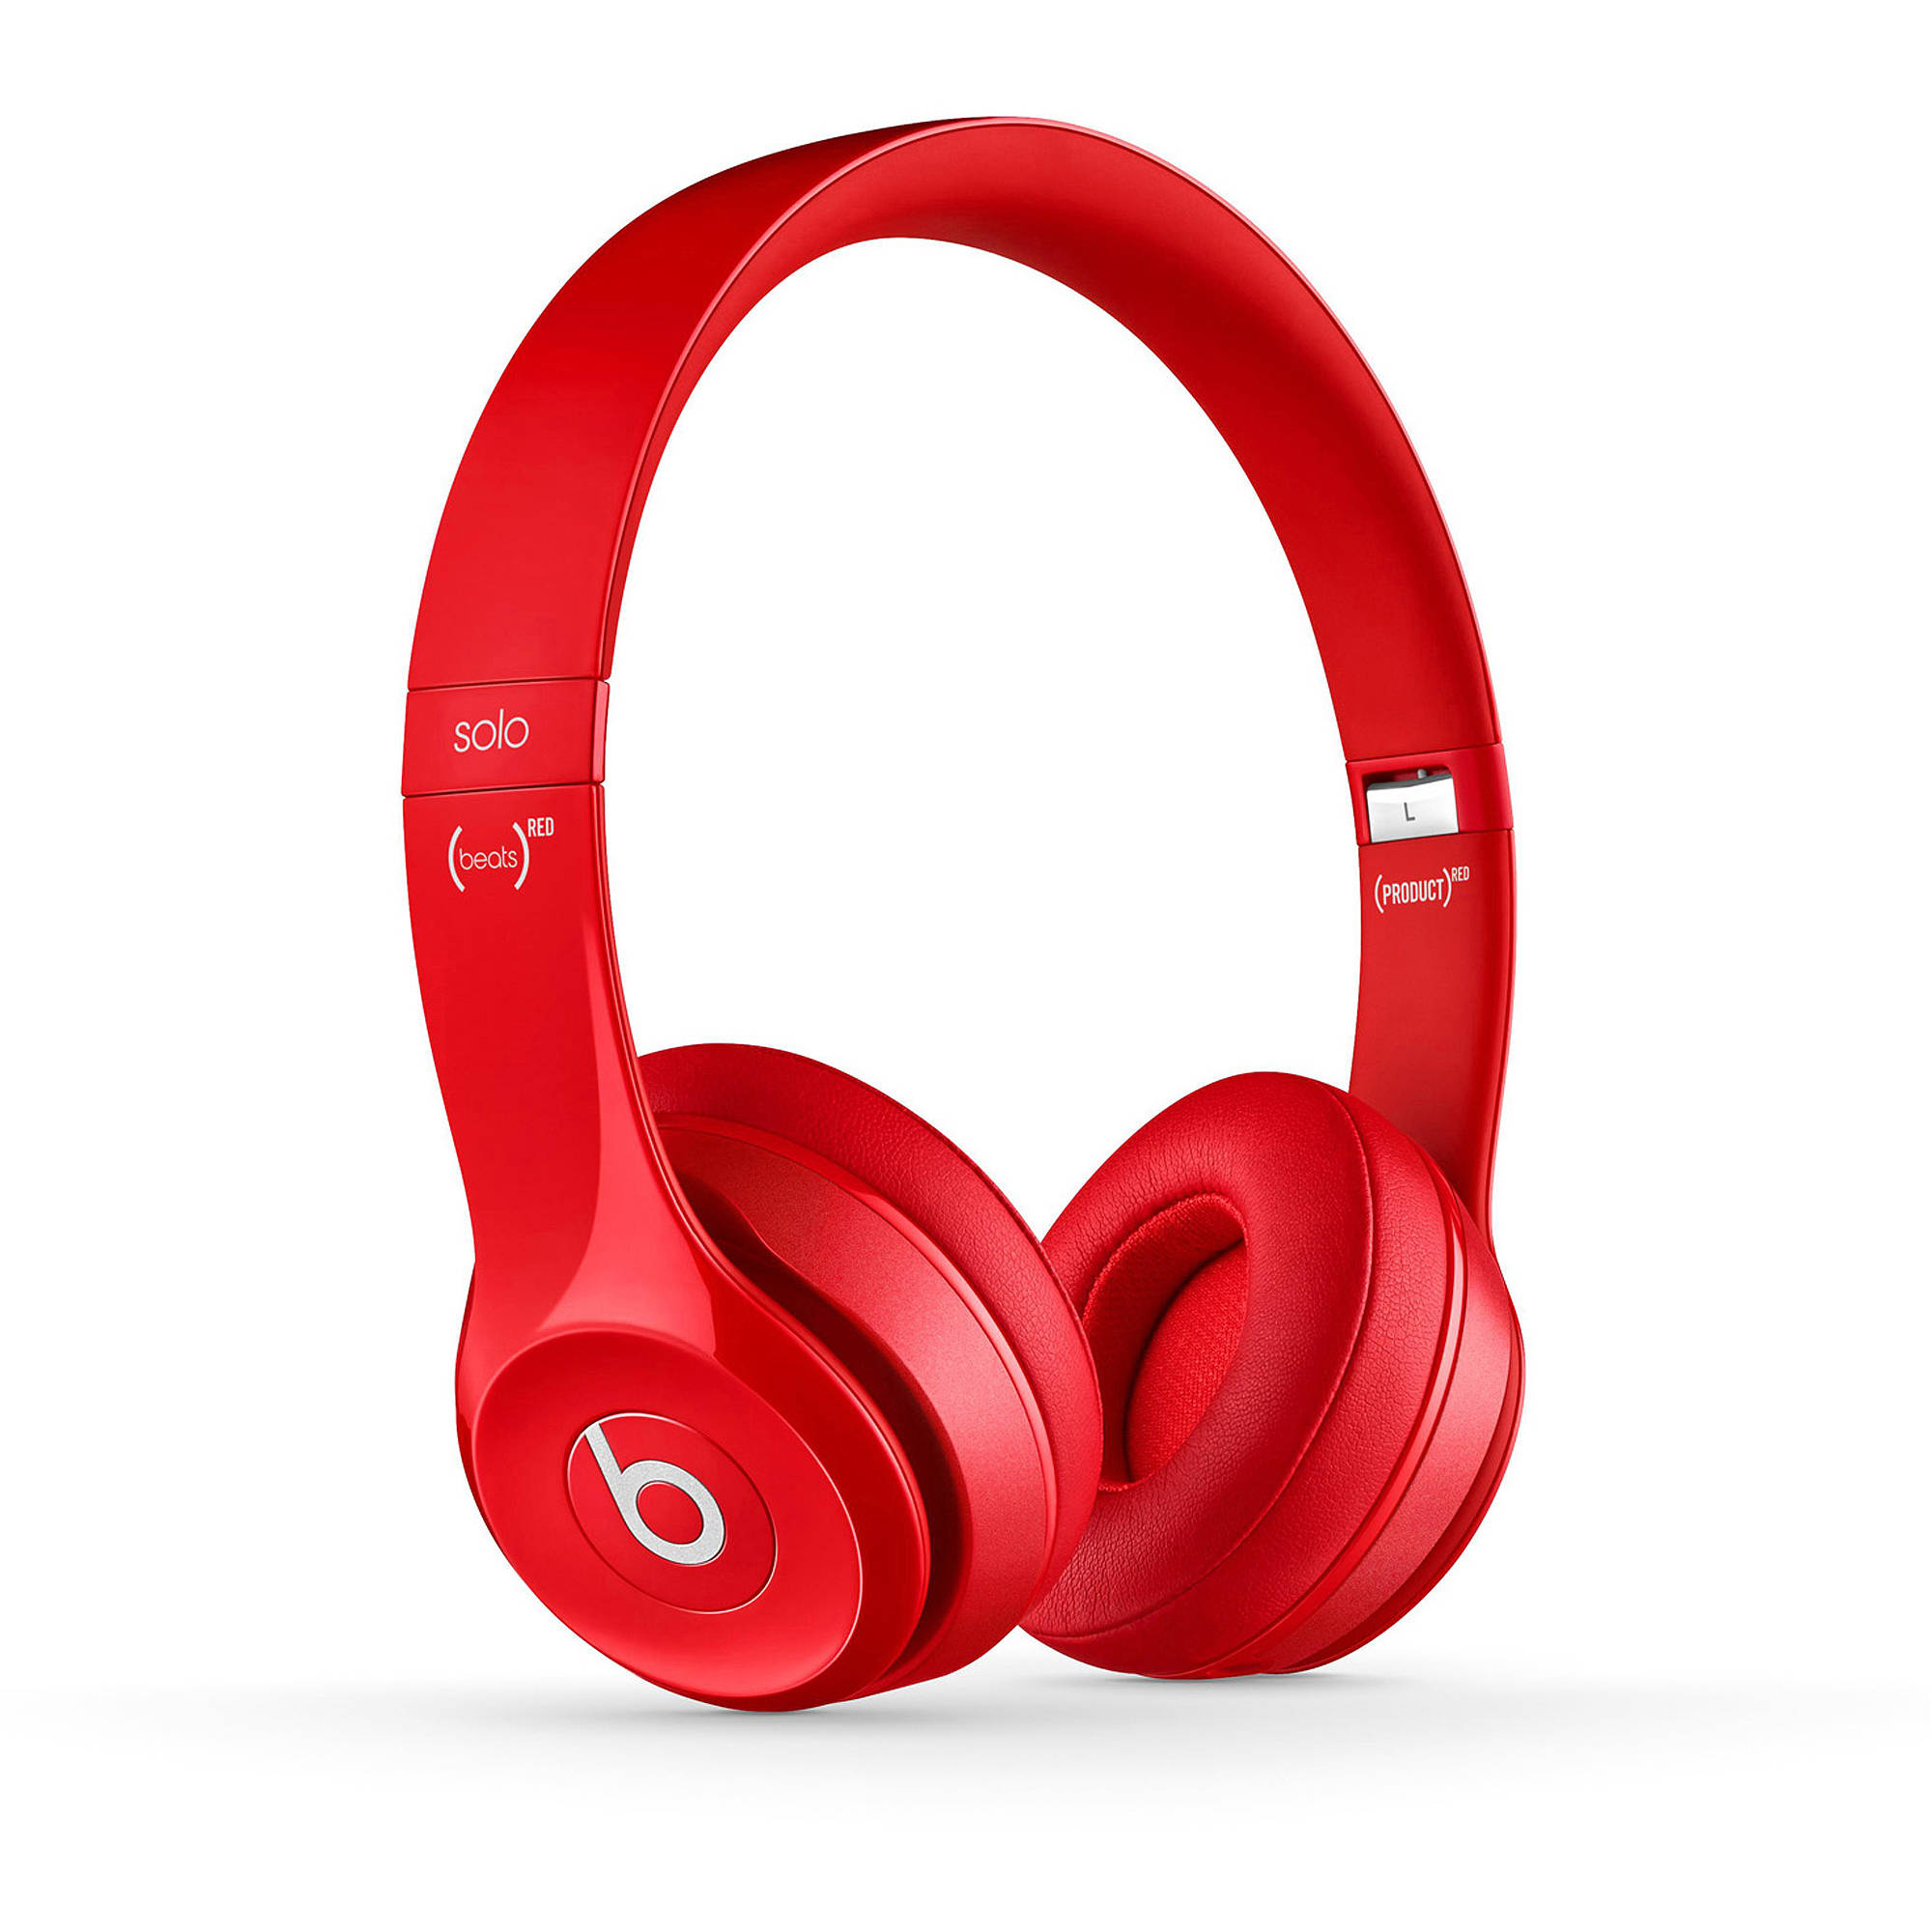 Refurbished Beats Solo 2 On-Ear Headphones, Red